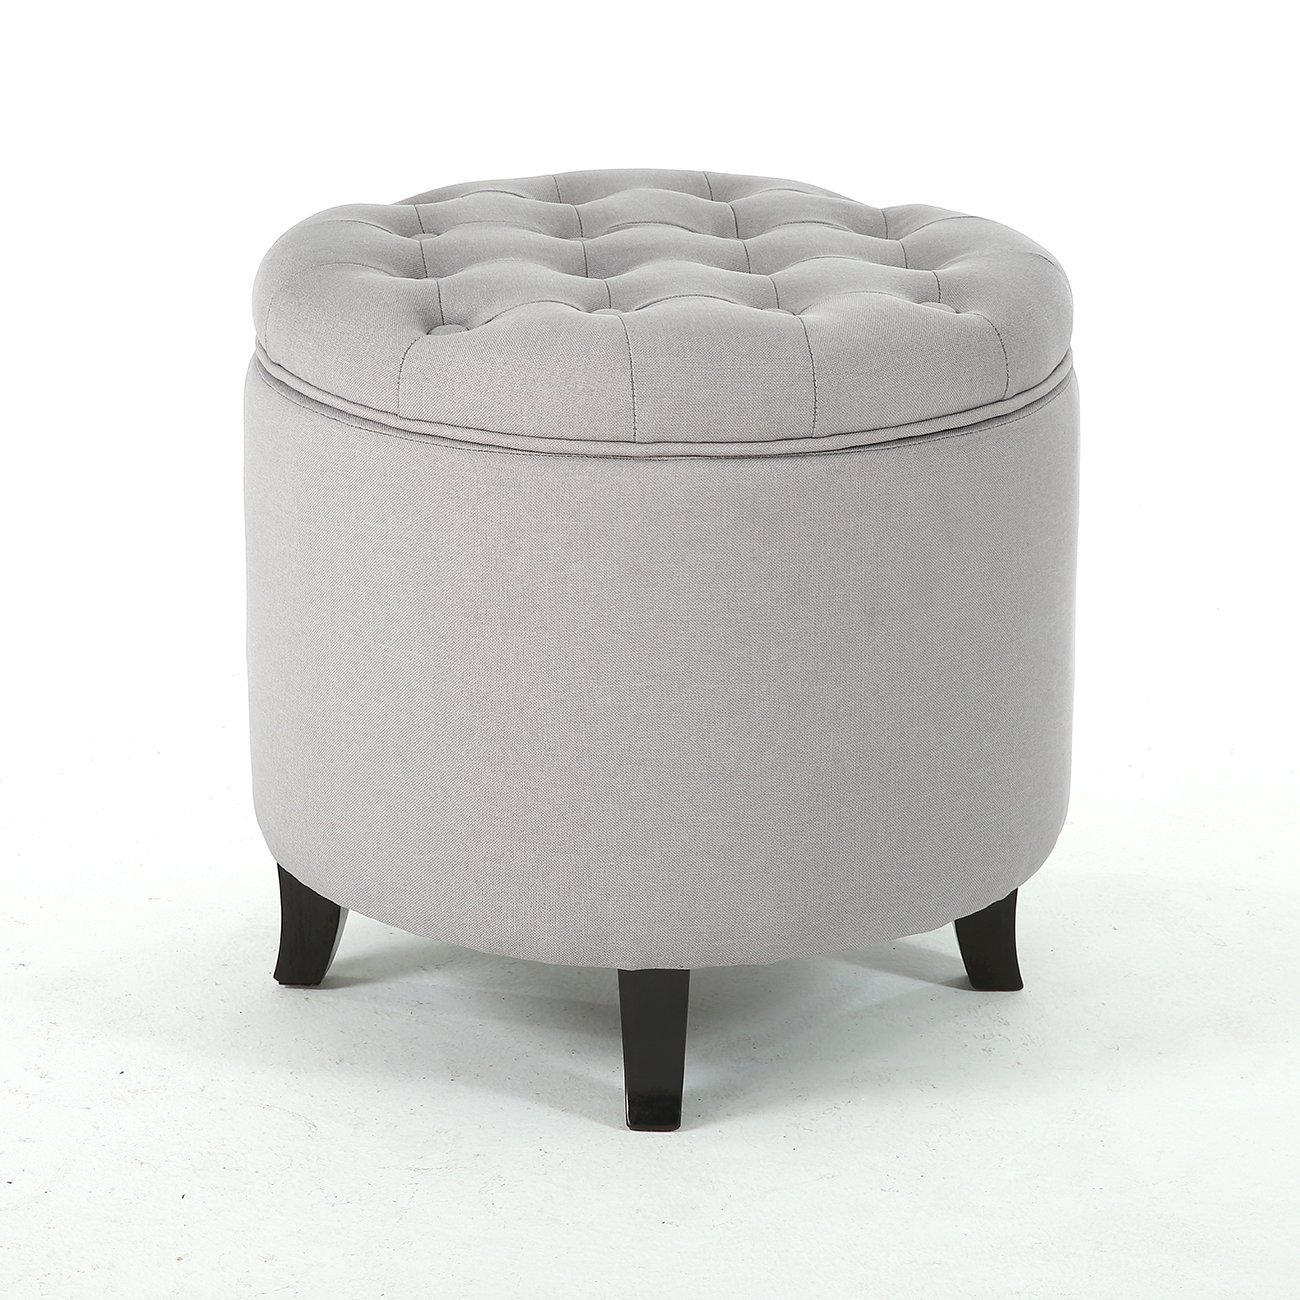 NEW Large Round Tufted Ottoman Footstool Seat Living Room Bedroom - Gray + FREE E-Book